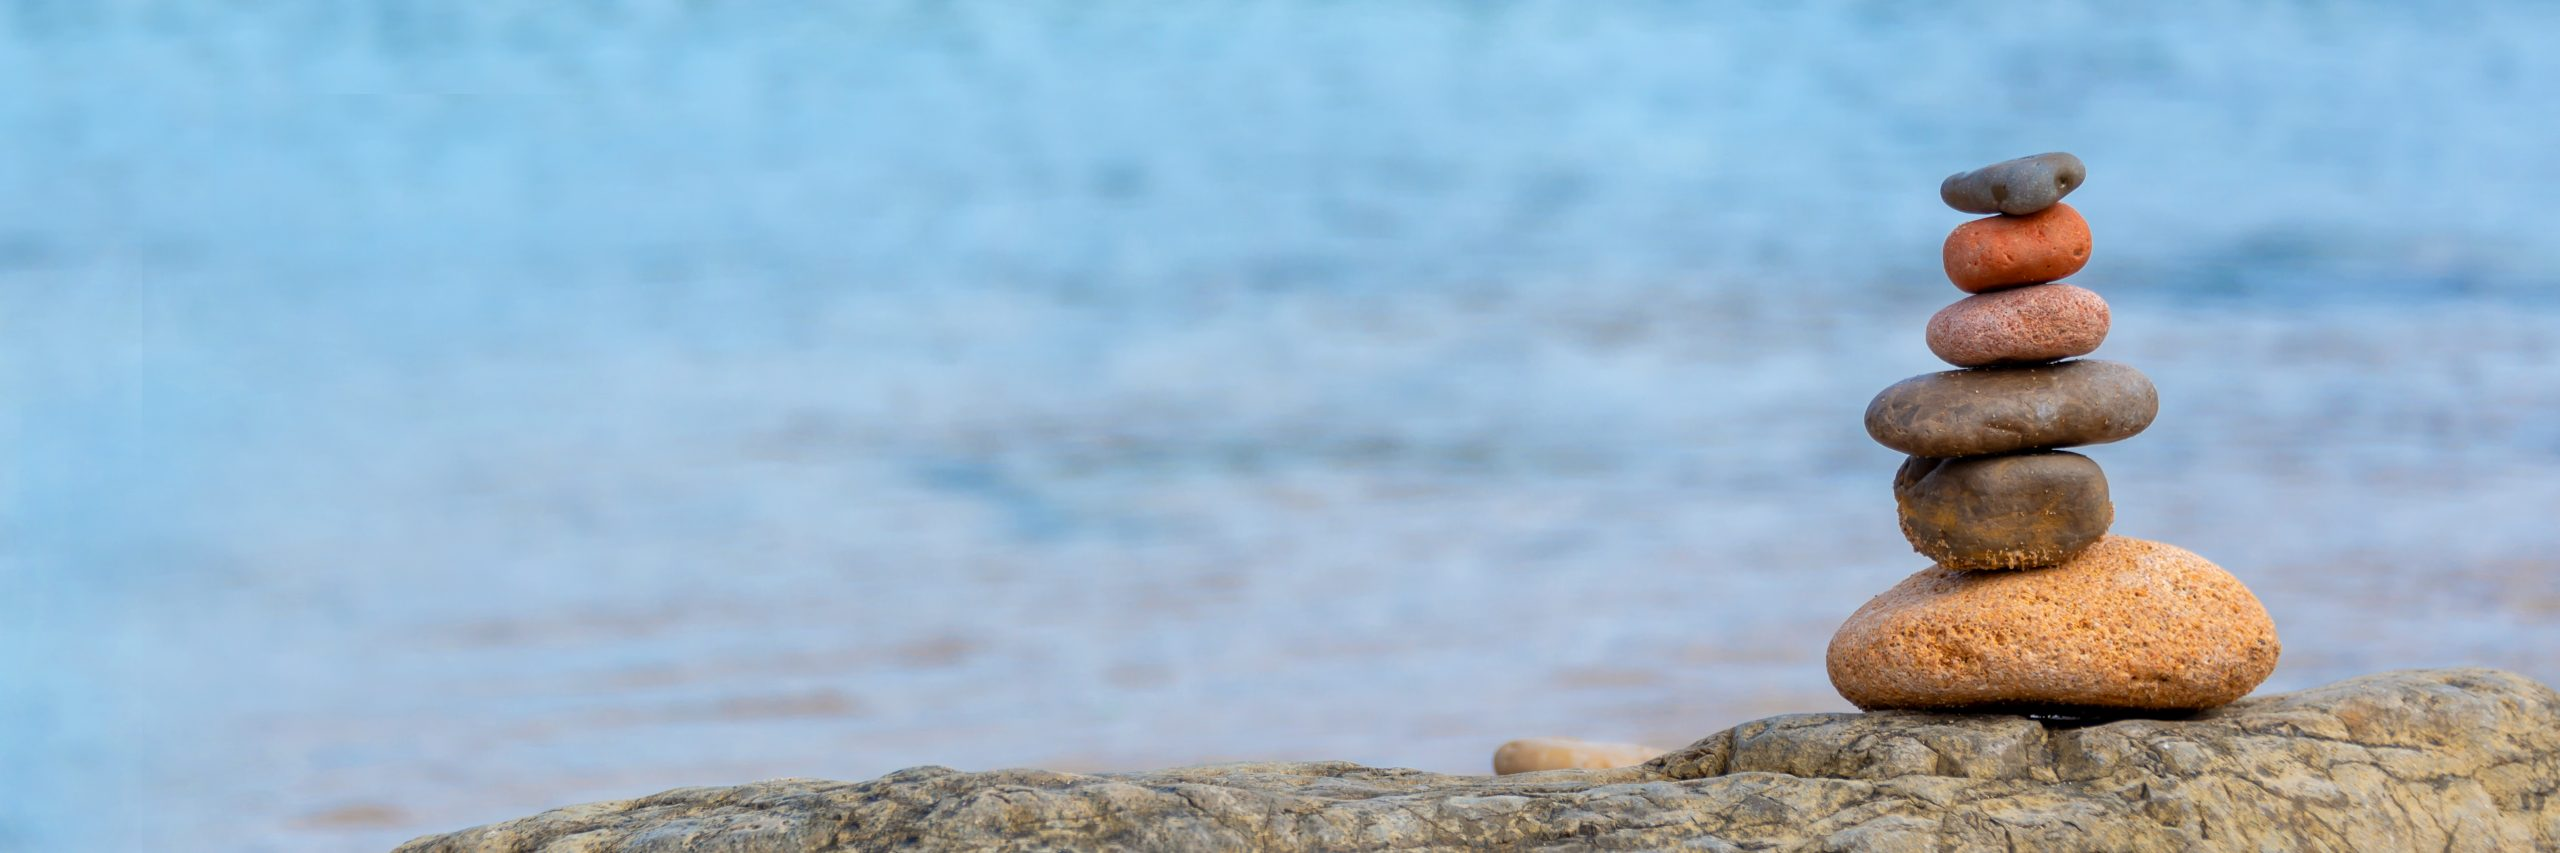 Pile of pebbles on a beach, panoramic blue water background